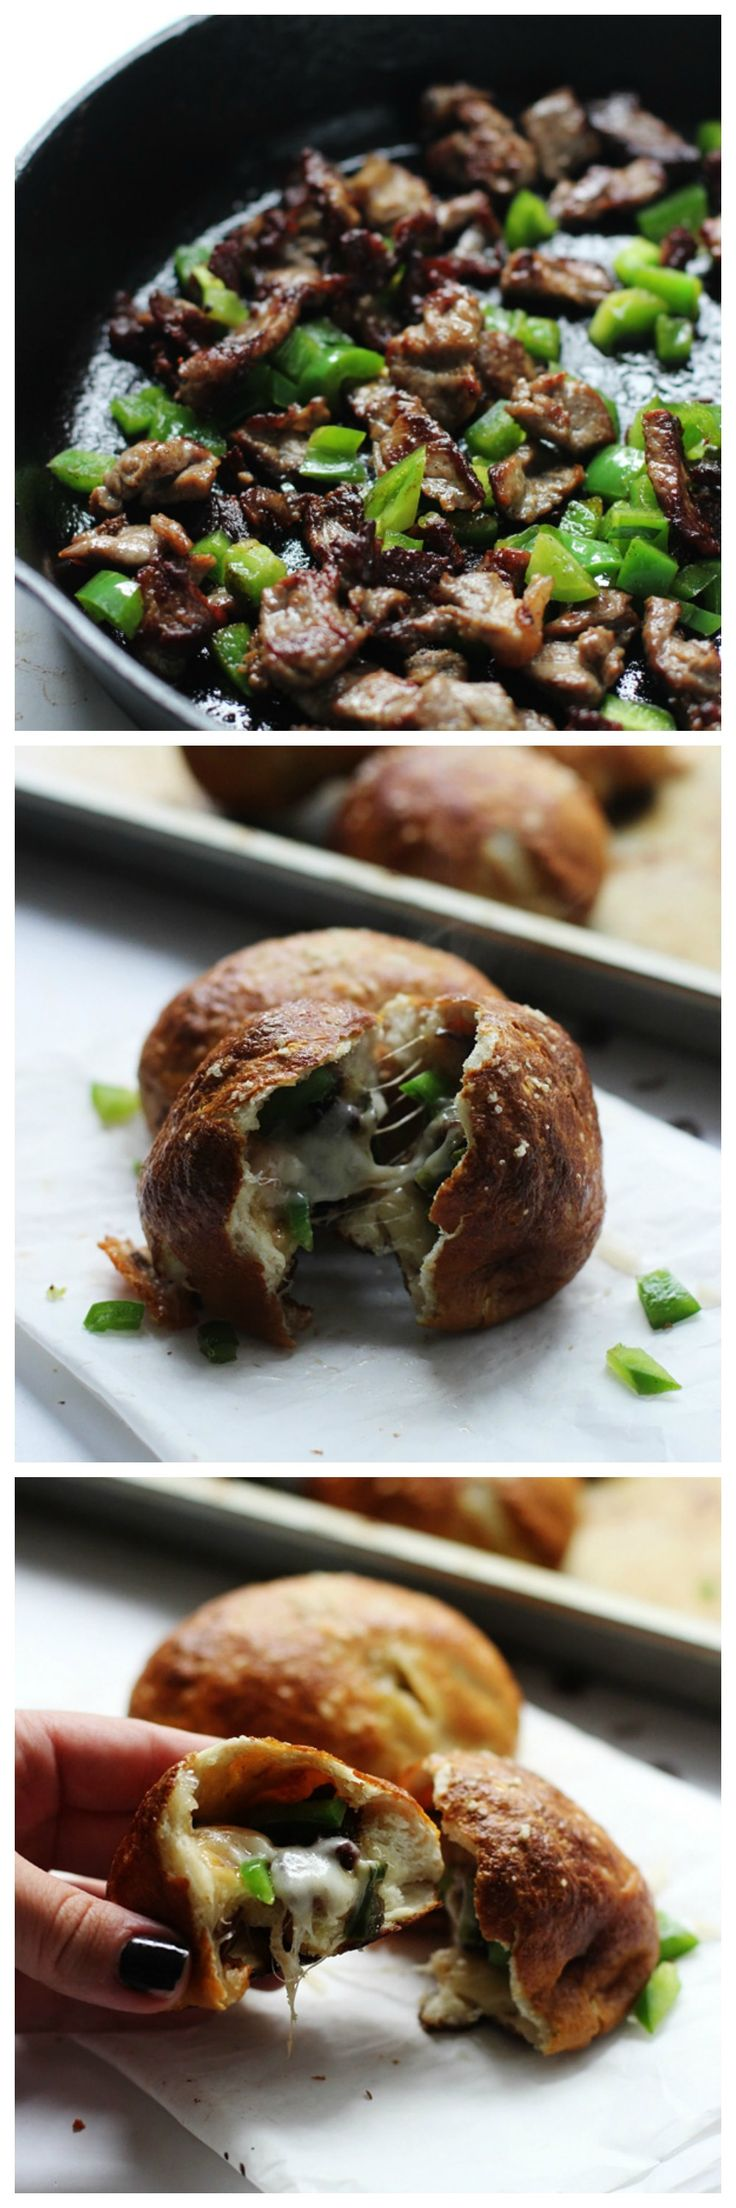 Philly Cheesesteak Pretzel Rolls - Al the flavors of a Philly stuffed in a soft, salty pretzel rolls!